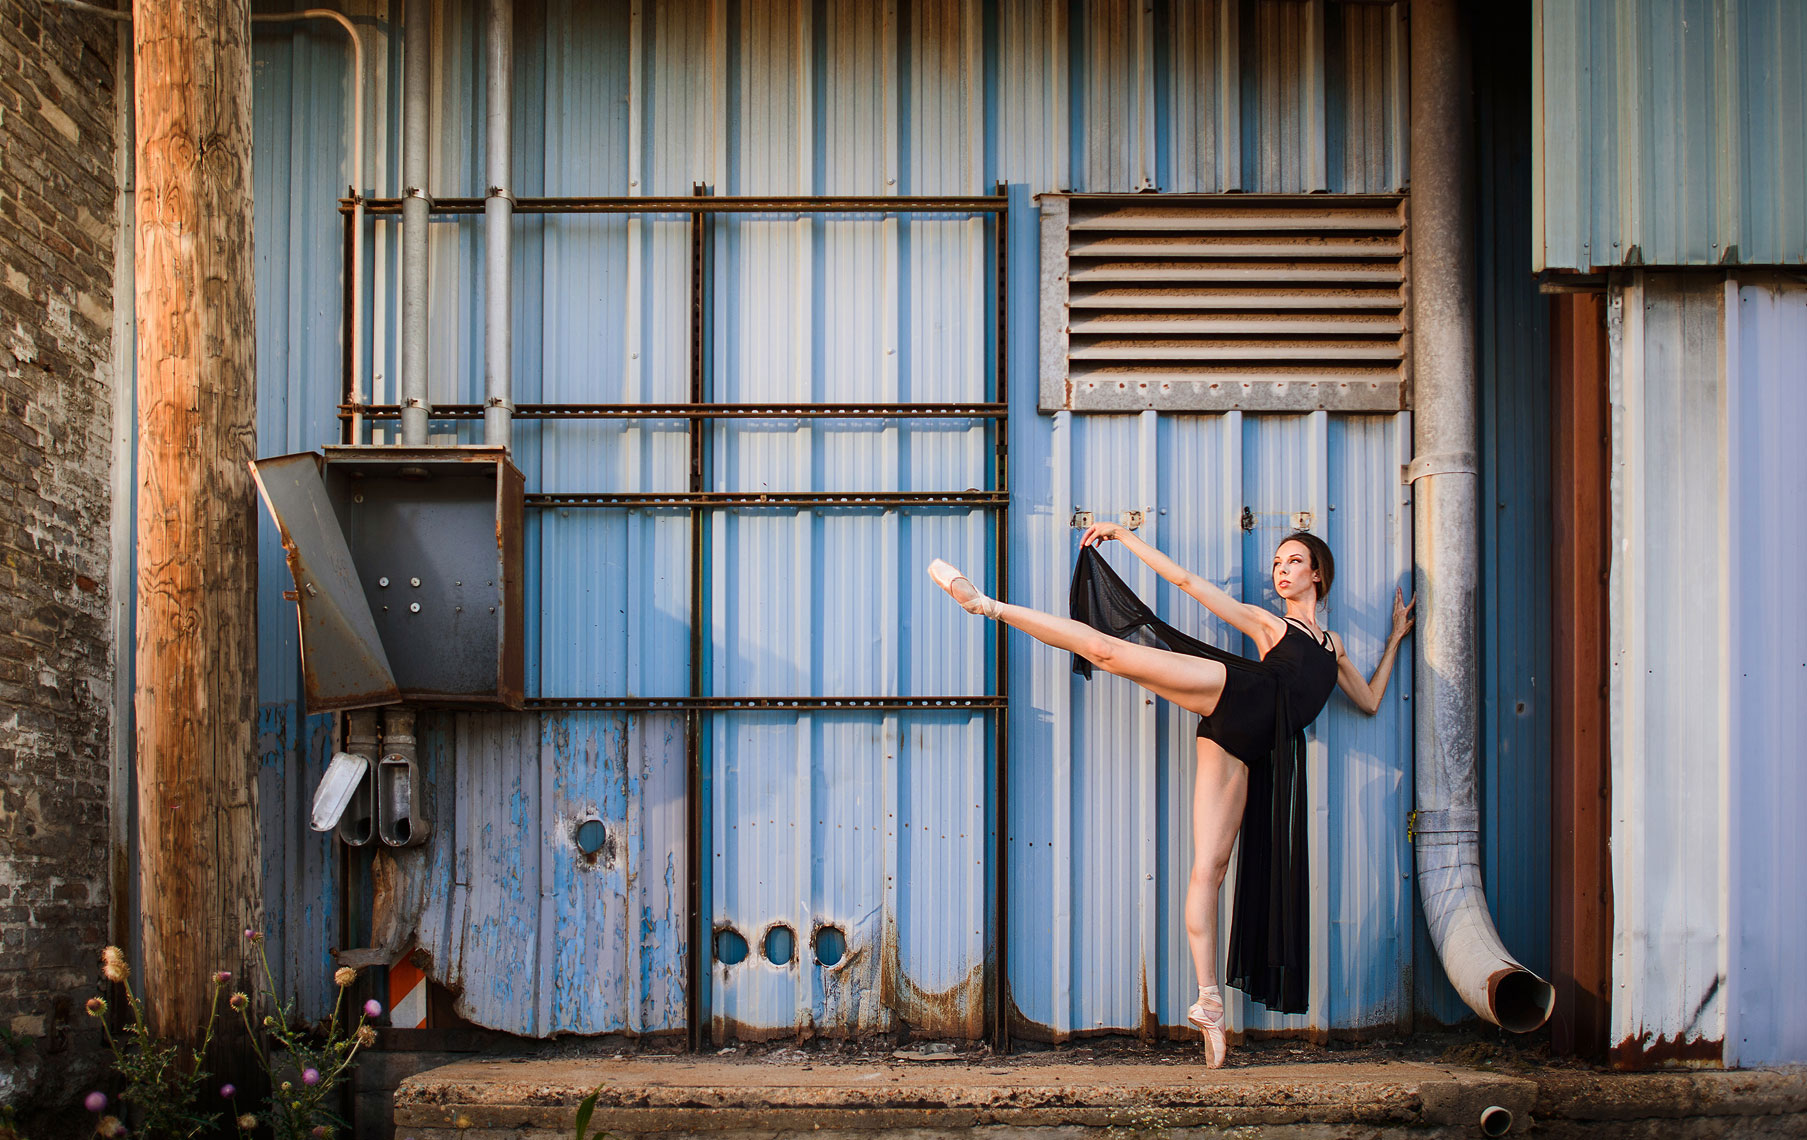 Ballet dancer posing on exterior of abandoned building.